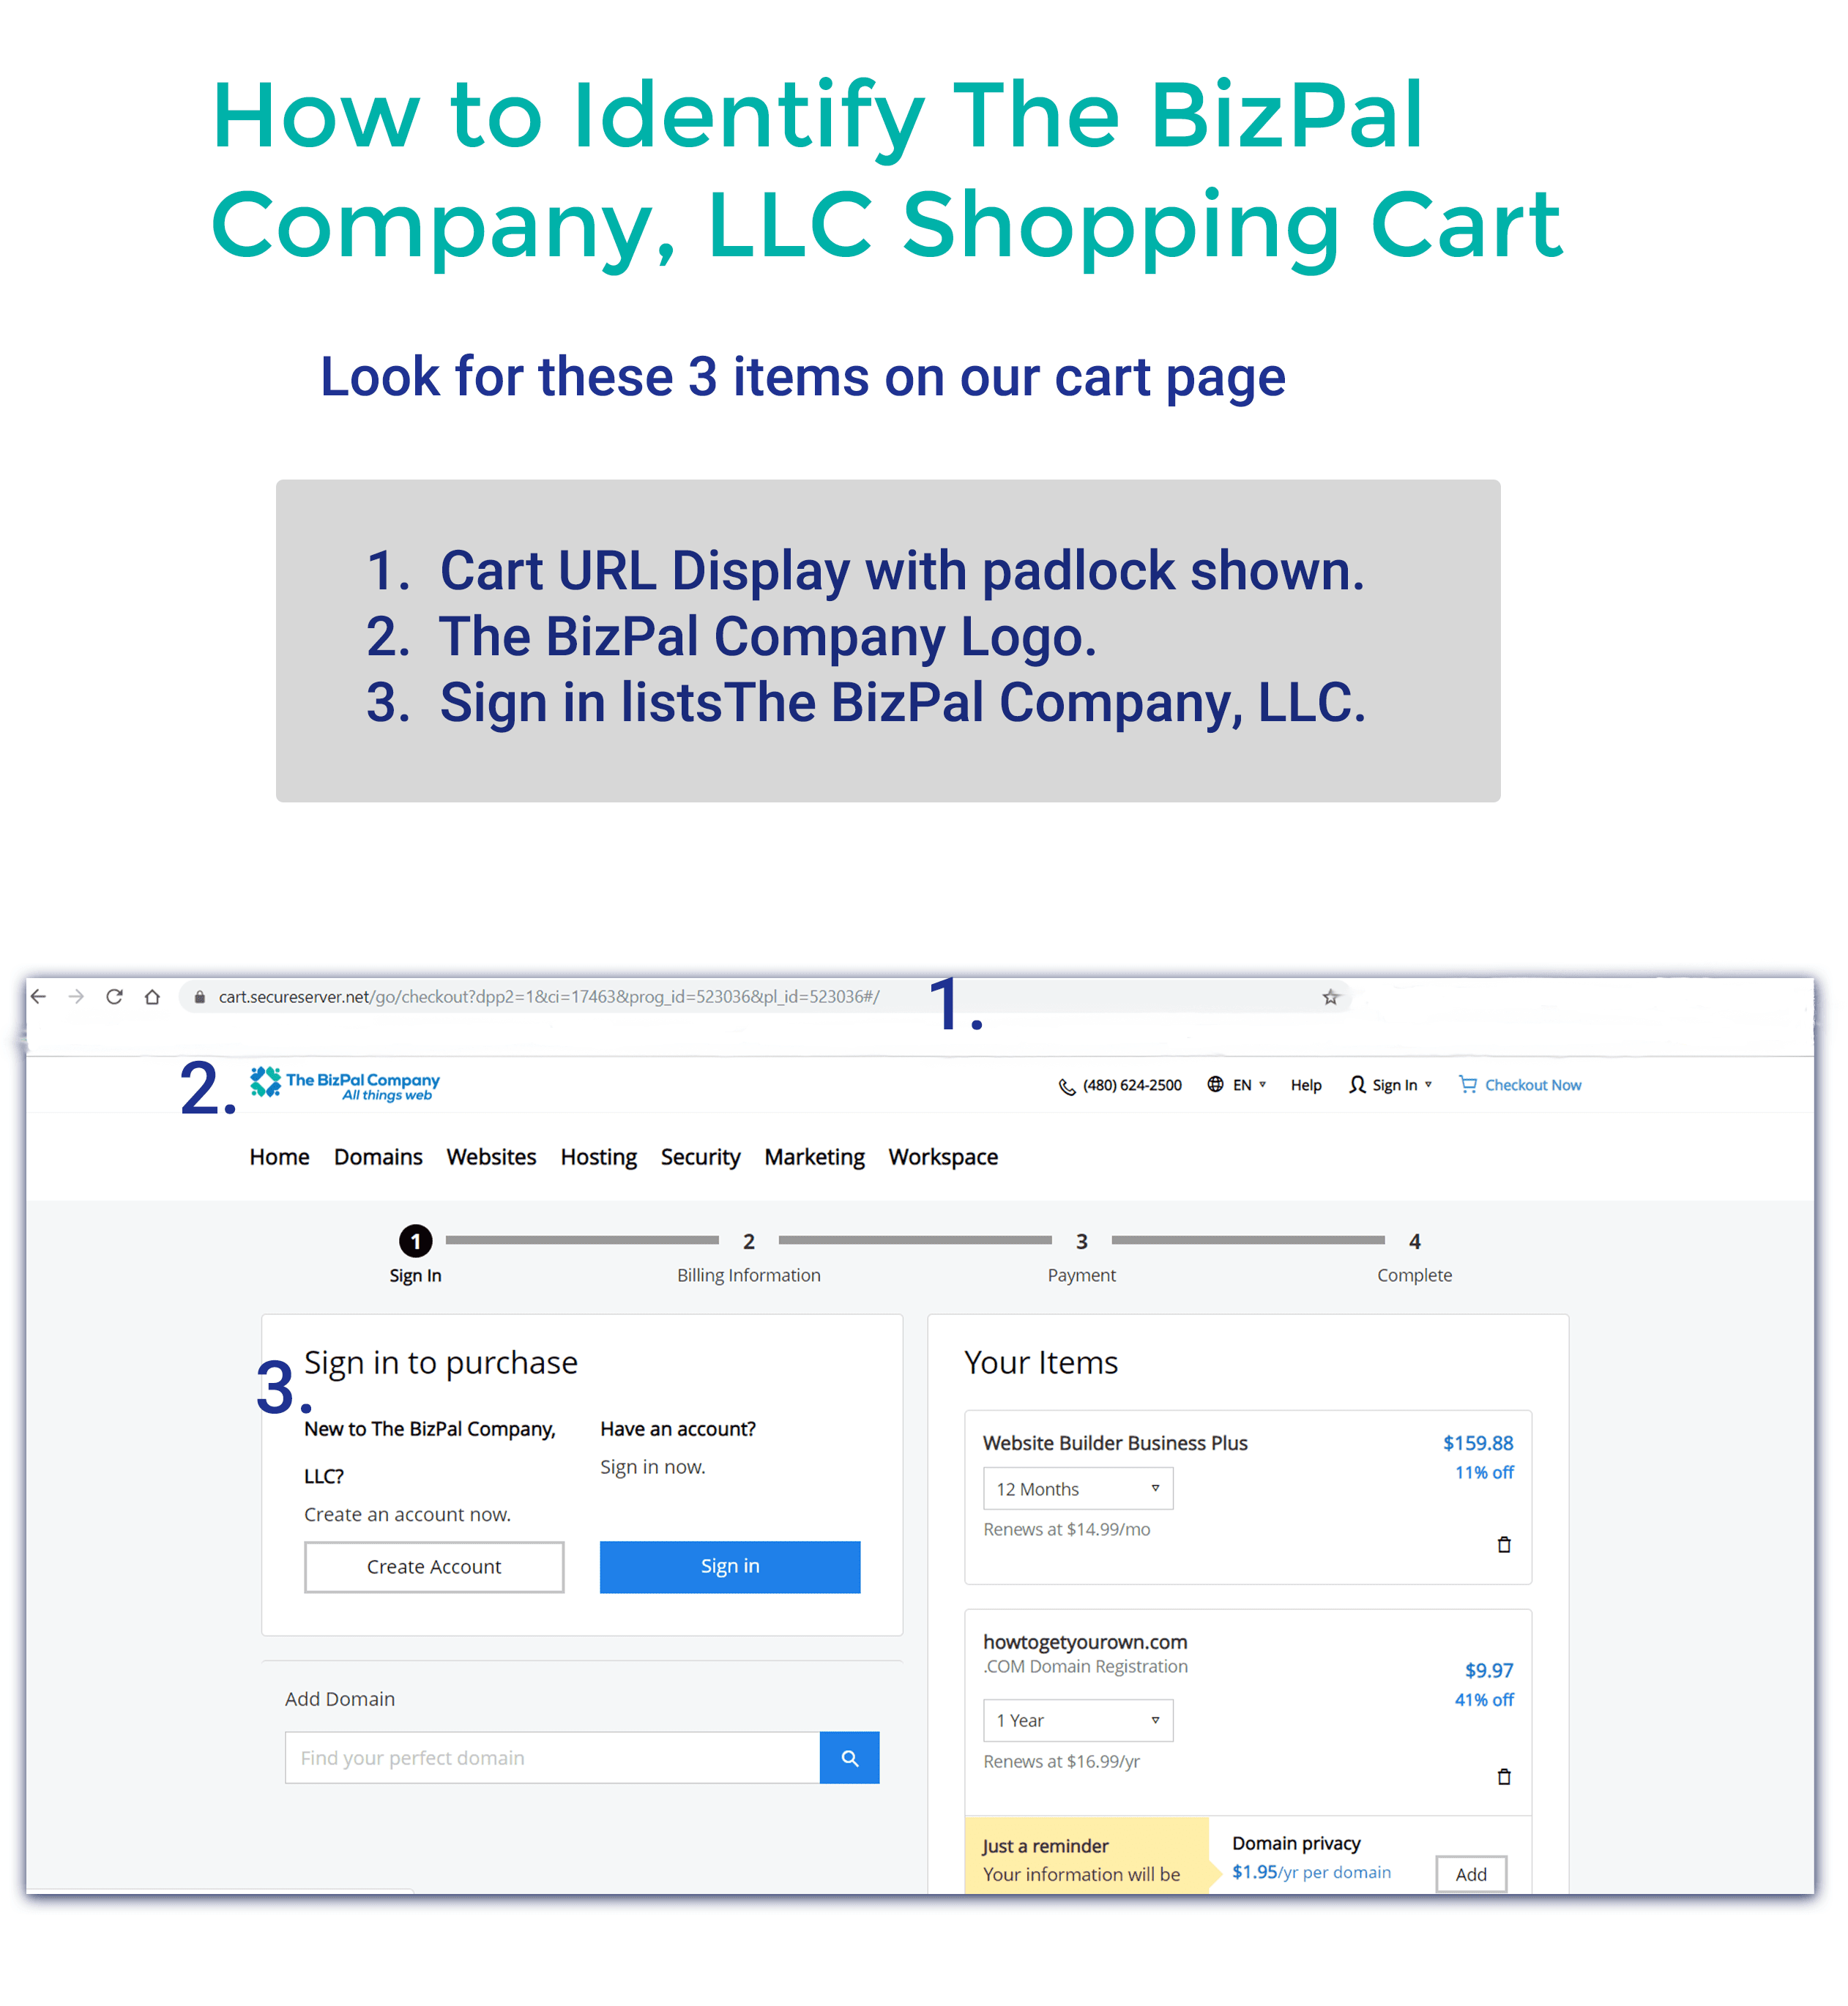 How to RecognizeThe Bizpal Company, LLC's Shopping Cart Page